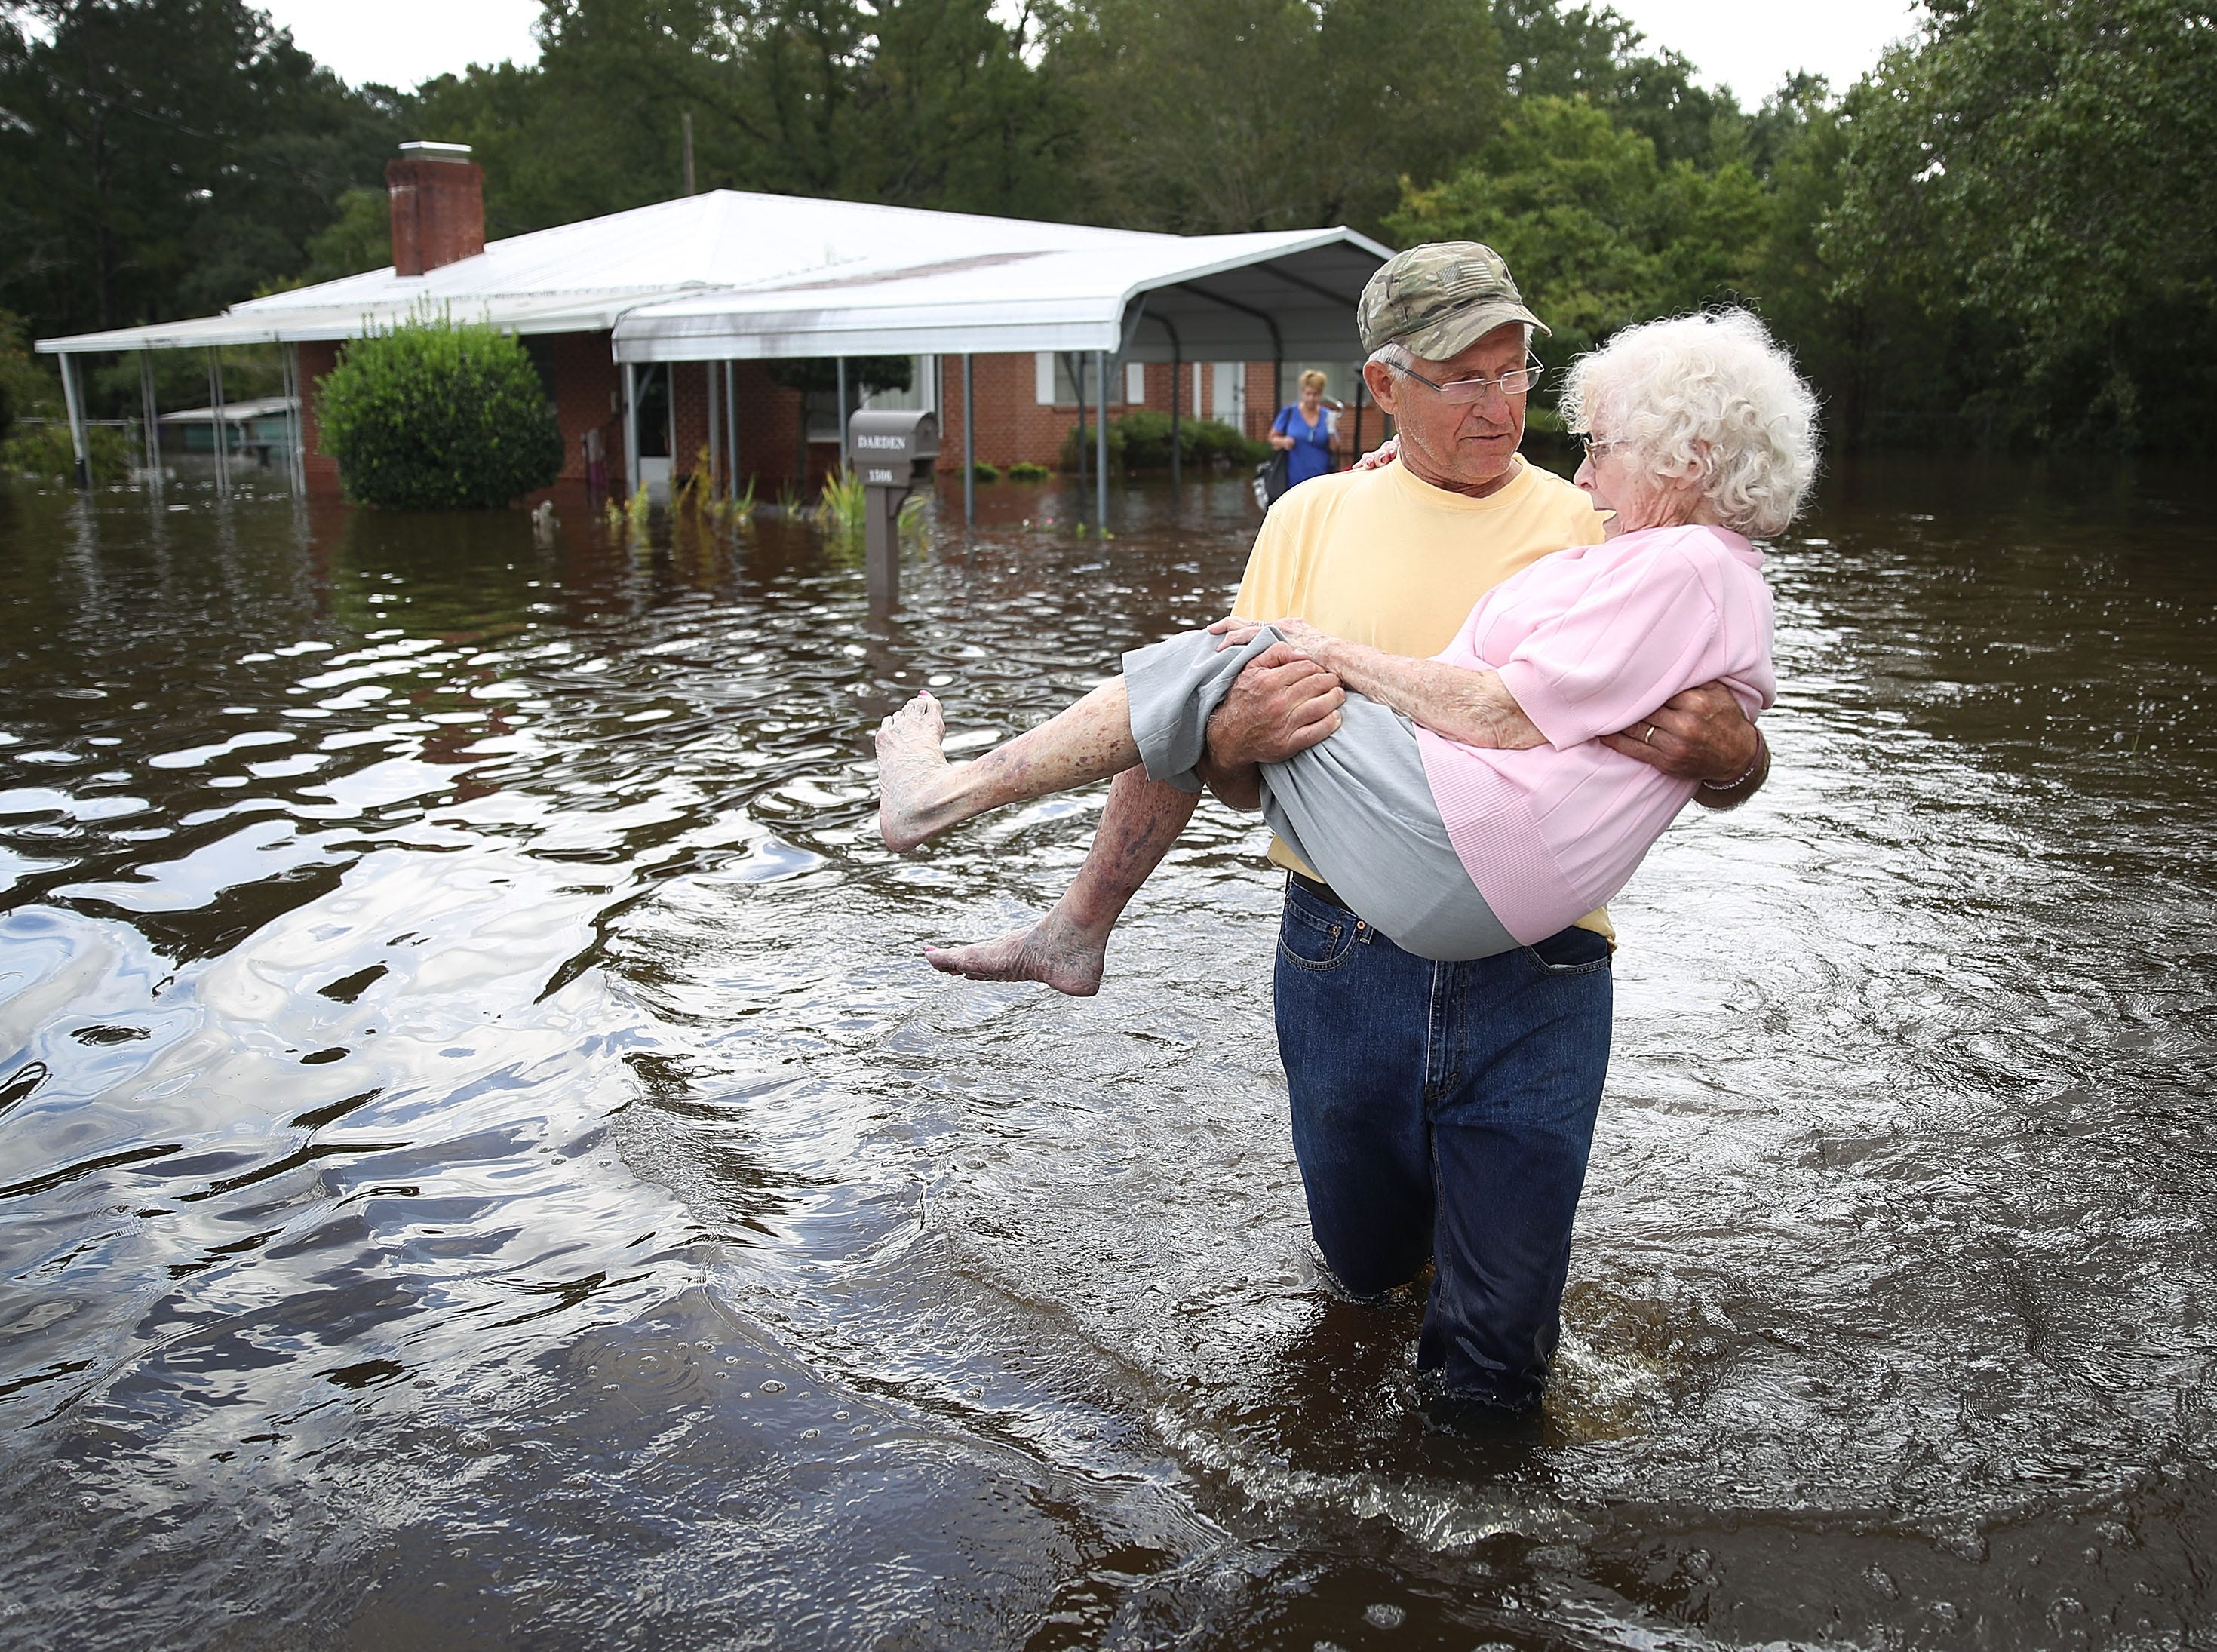 Bob Richling carries Iris Darden as water from the Little River starts to seep into her home on Sept. 17, 2018 in Spring Lake, North Carolina. Flood waters from the cresting rivers inundated the area after the passing of Hurricane Florence.